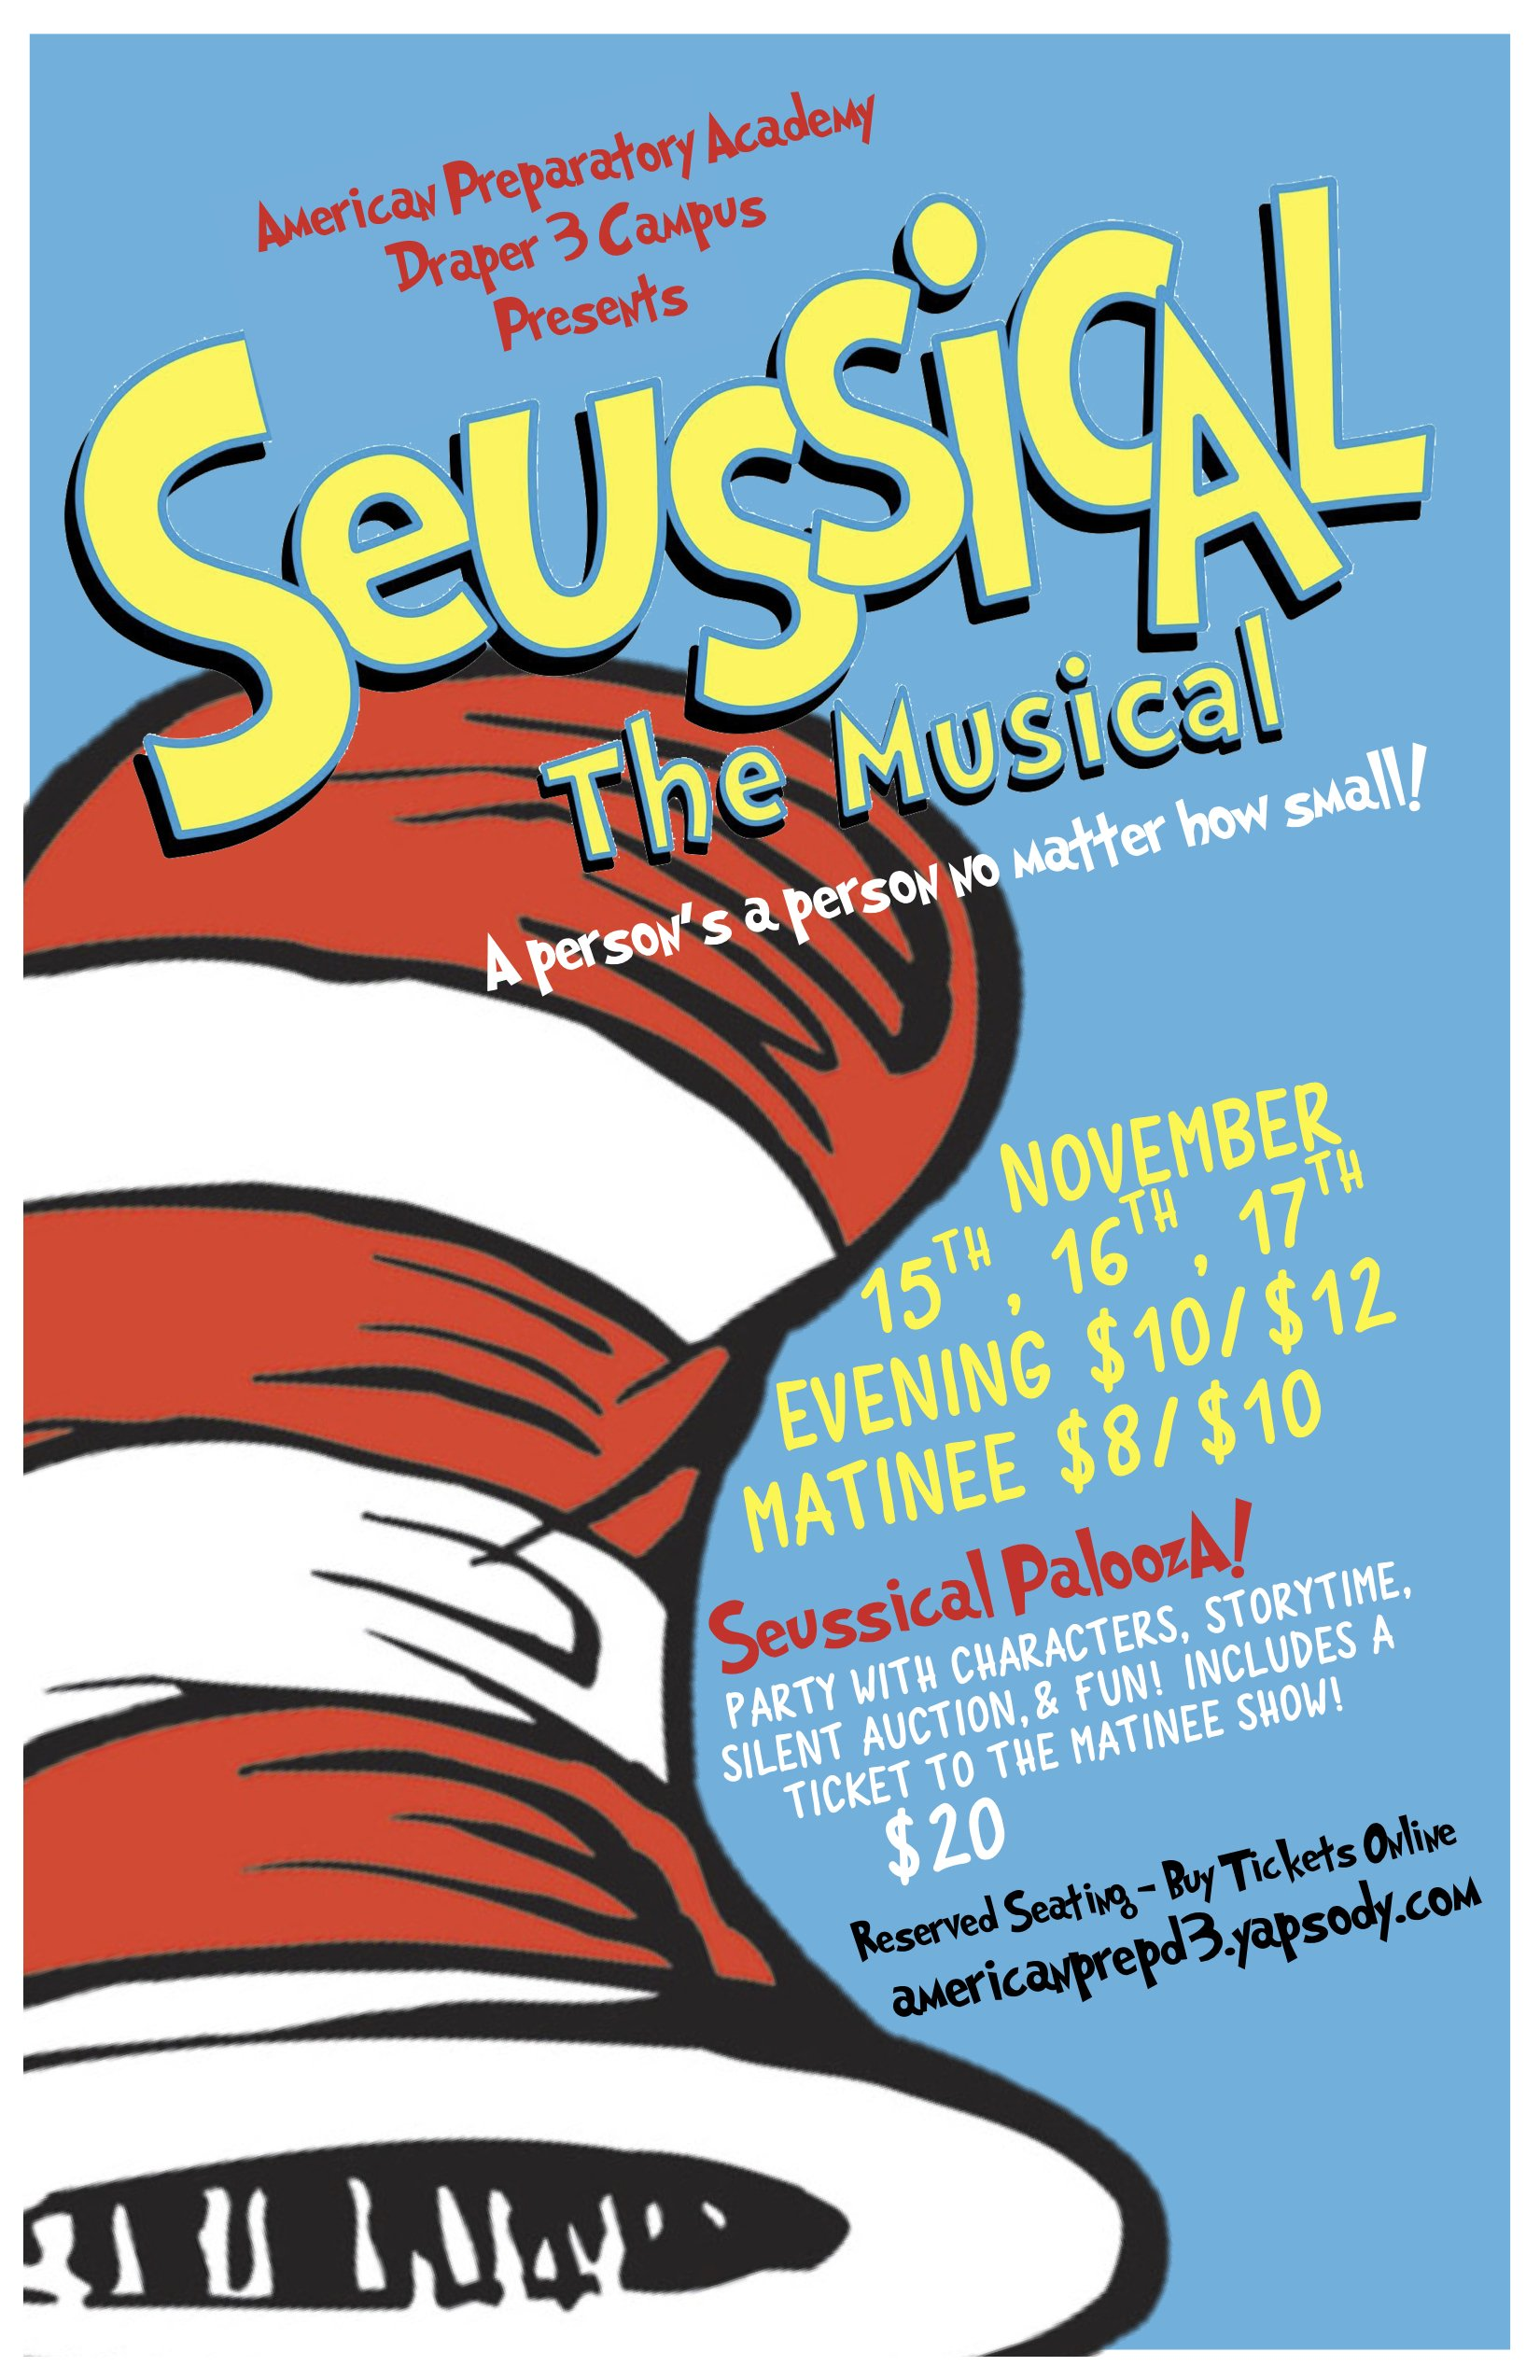 da7f2179ce4b This fantastical family musical is based on the books of Dr. Seuss